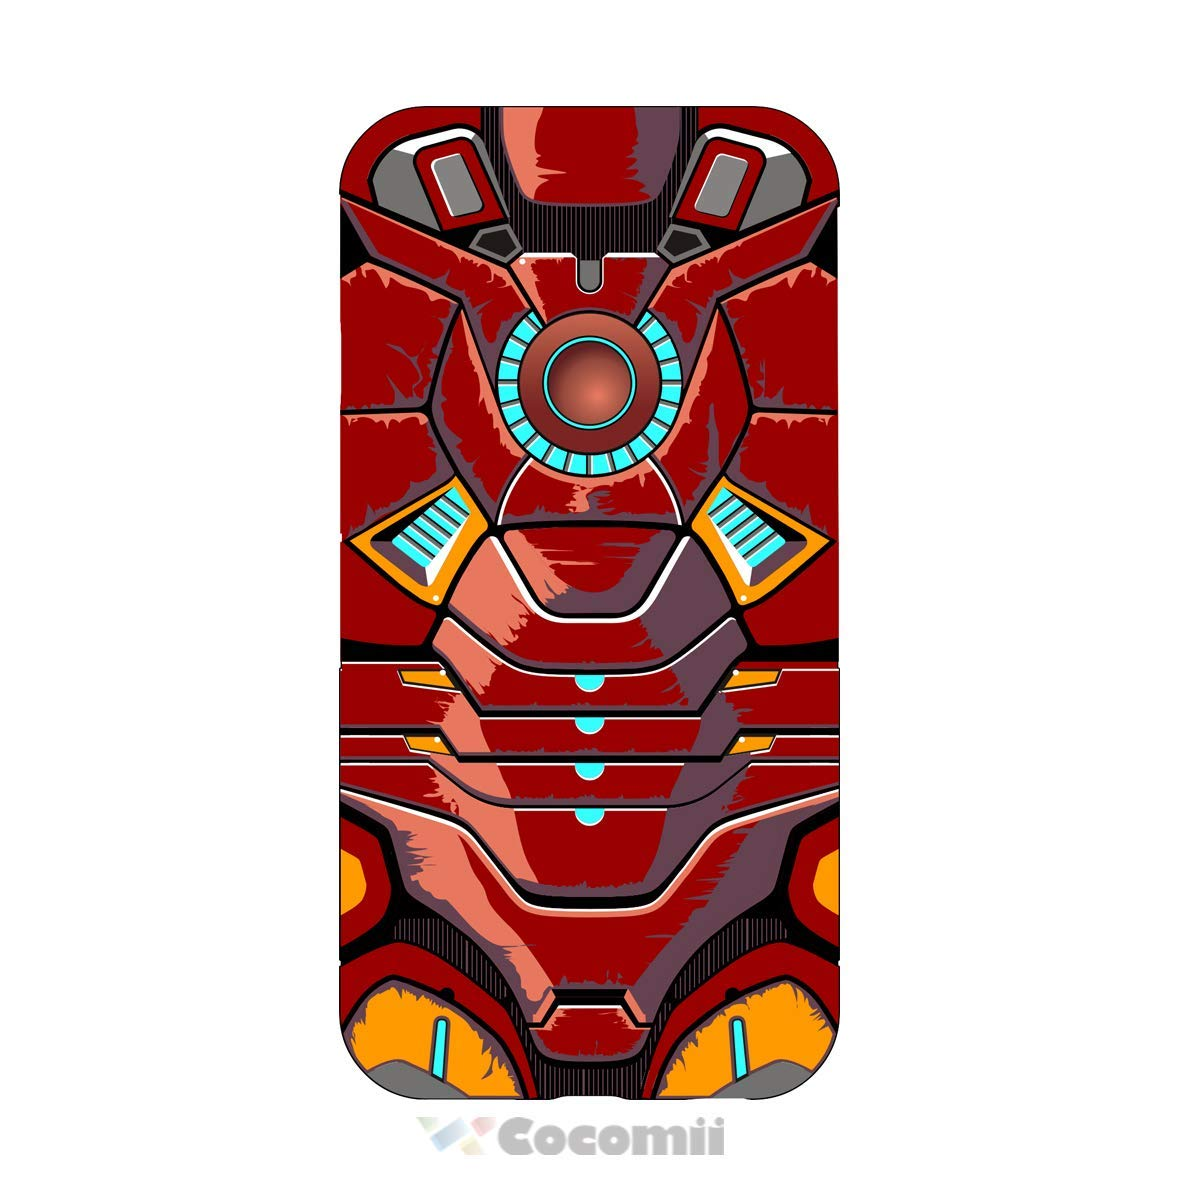 Cocomii Iron Man Armor Xiaomi Redmi Note 5/Redmi 5 Plus Case New [Heavy Duty] Tactical Grip Kickstand Shockproof Bumper [Military Defender] Cover for ...